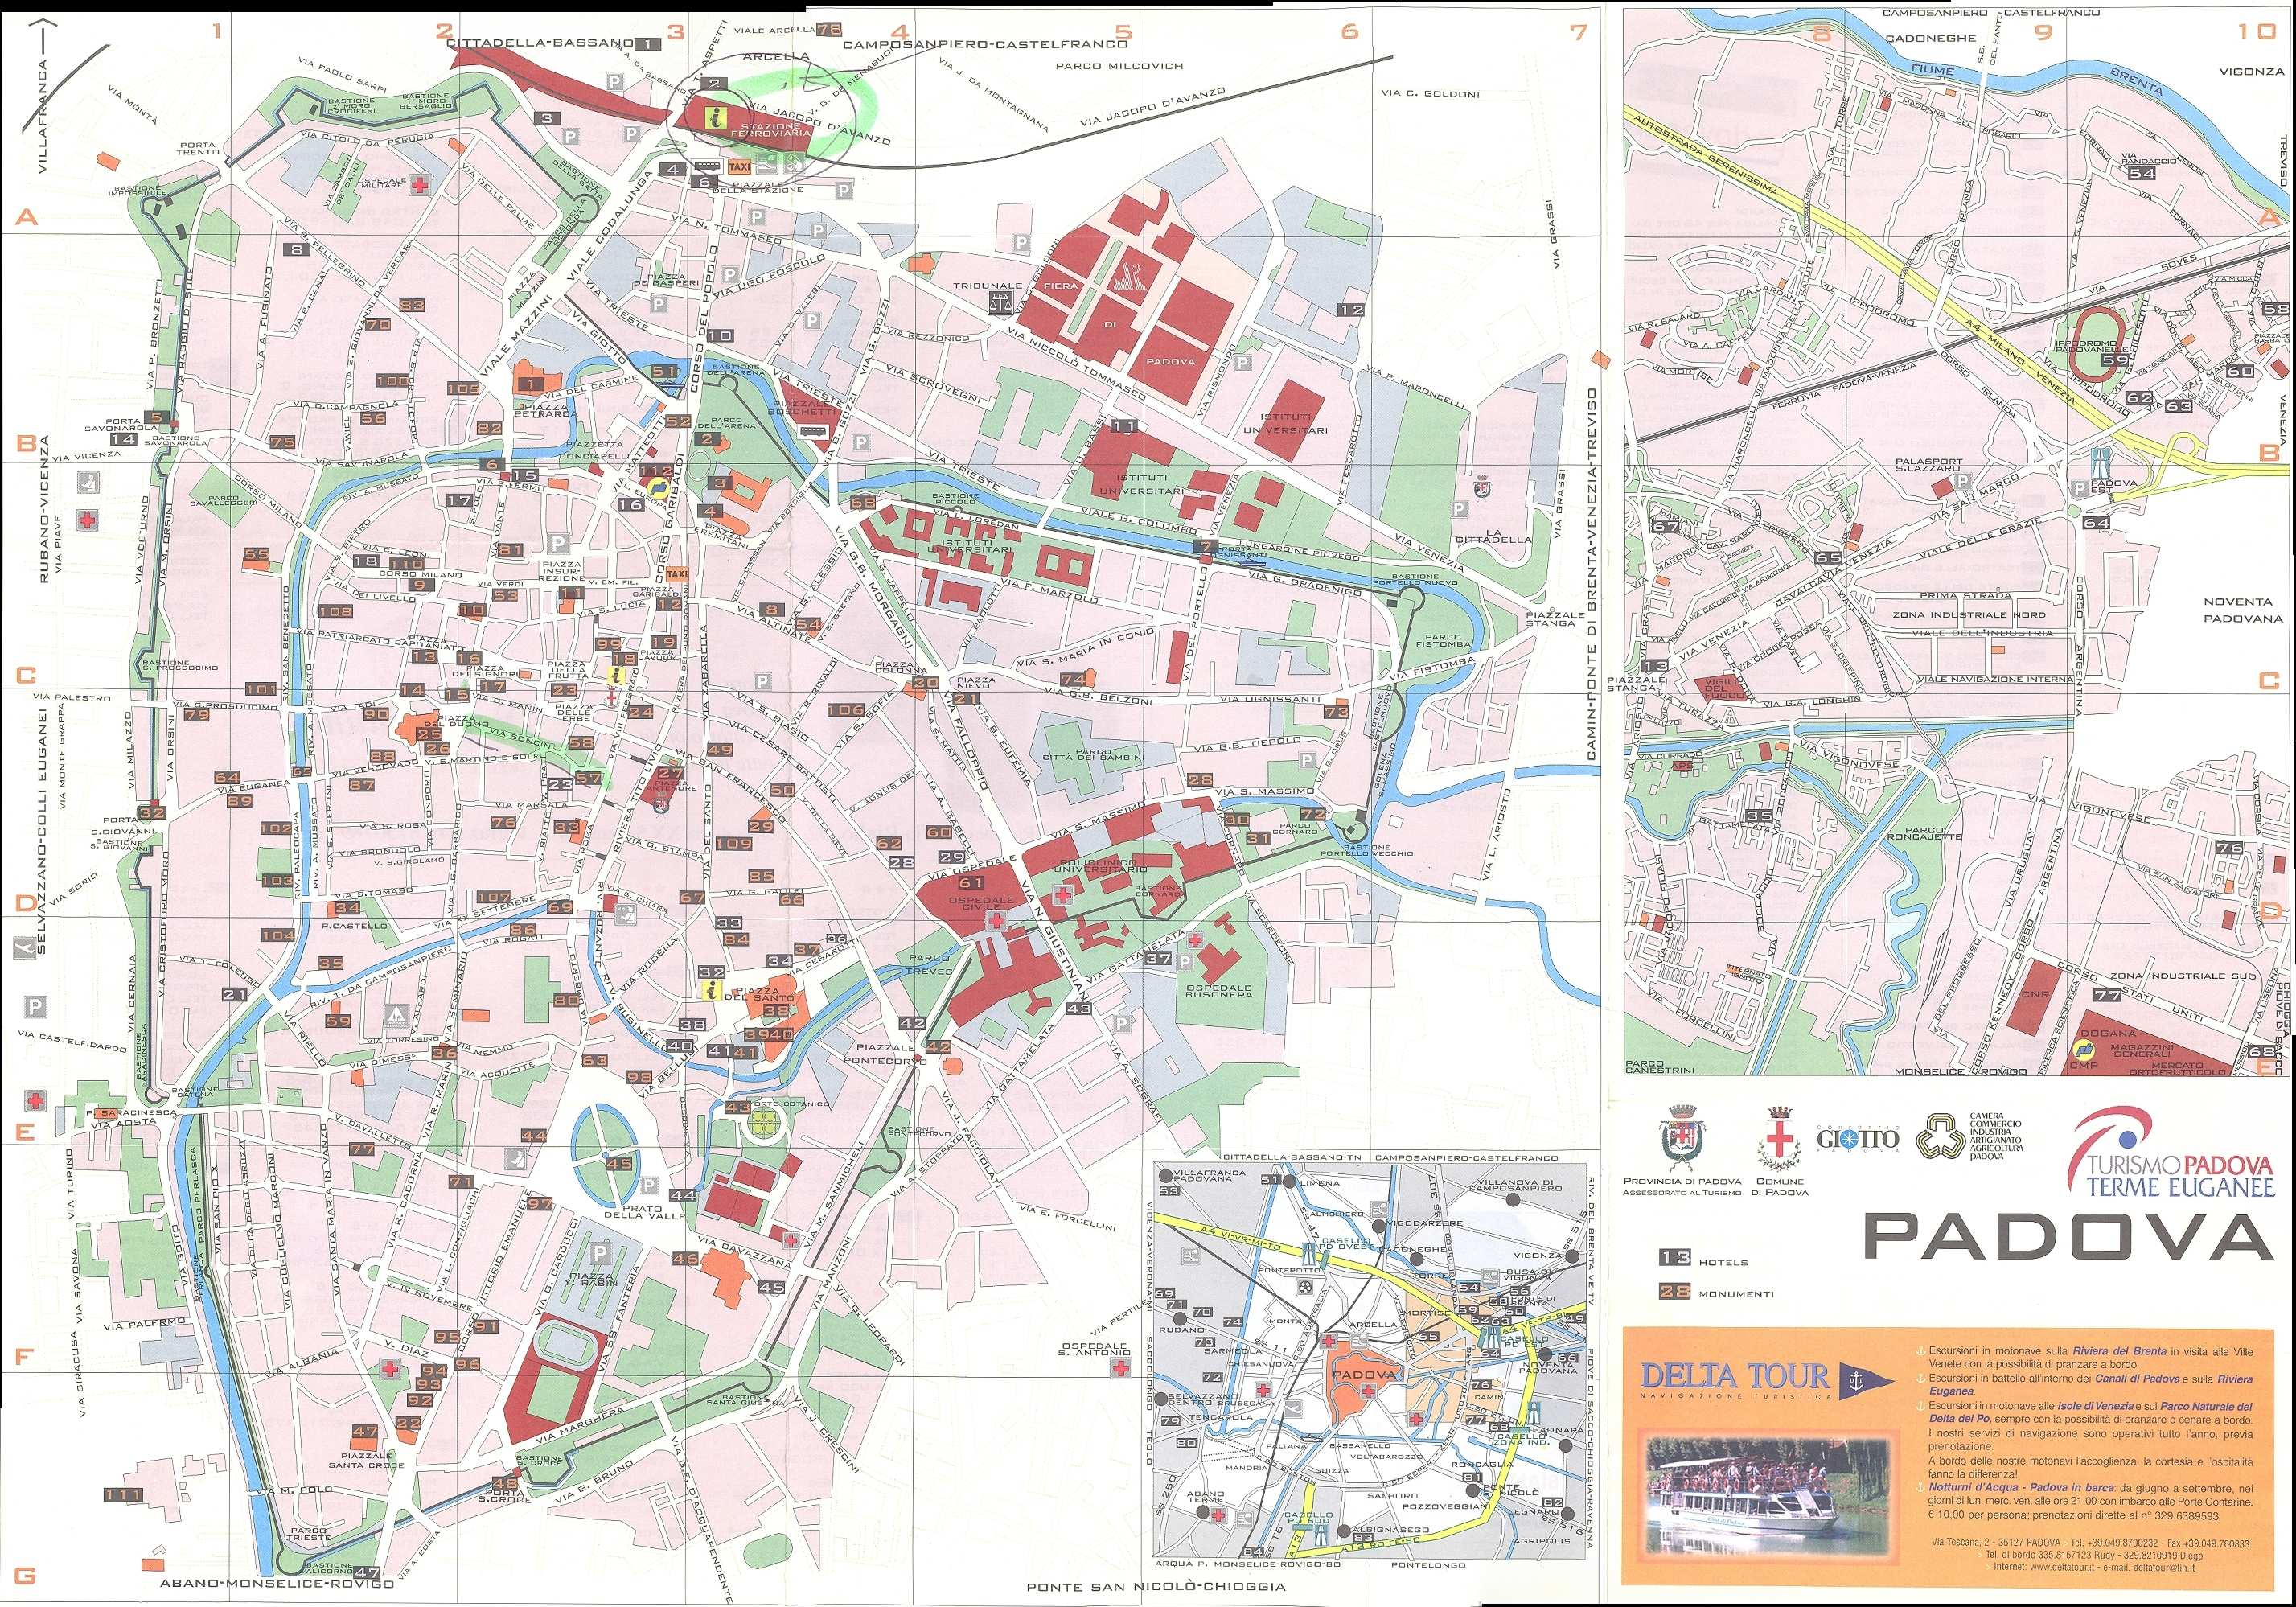 Large Padua Maps For Free Download And Print High Resolution And Detailed Maps